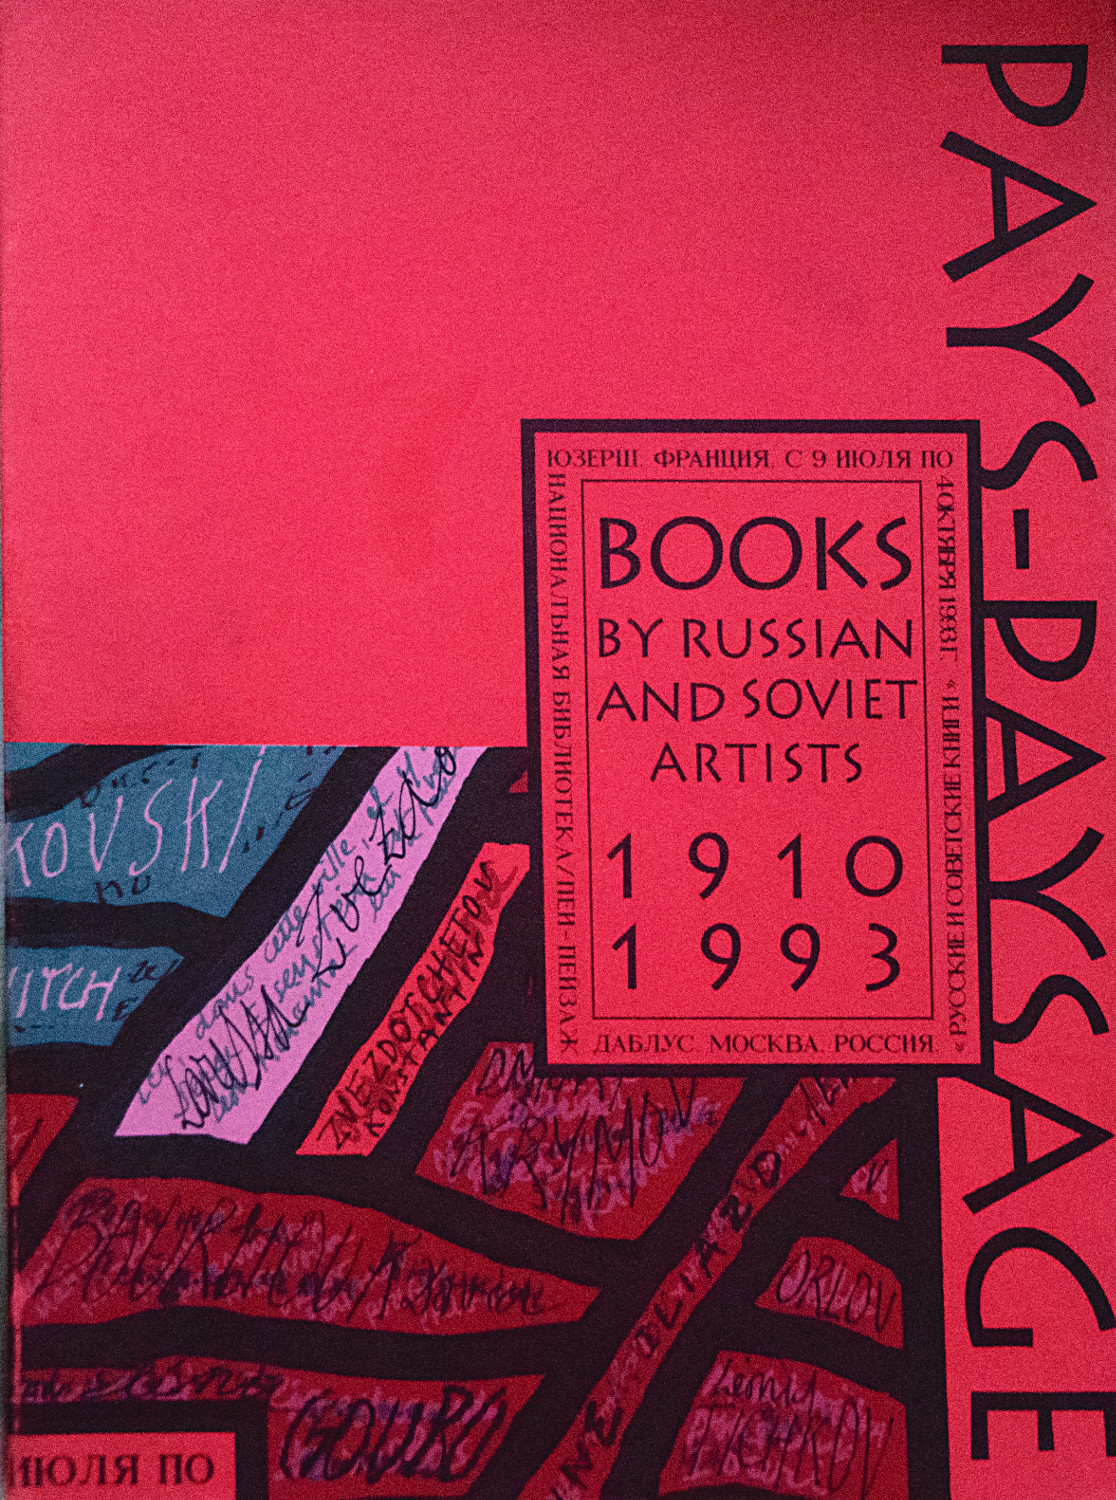 Books by Russian and Soviet Artists 1910-1993:  Ed. Counot, Catherine and Pauzat, Monique